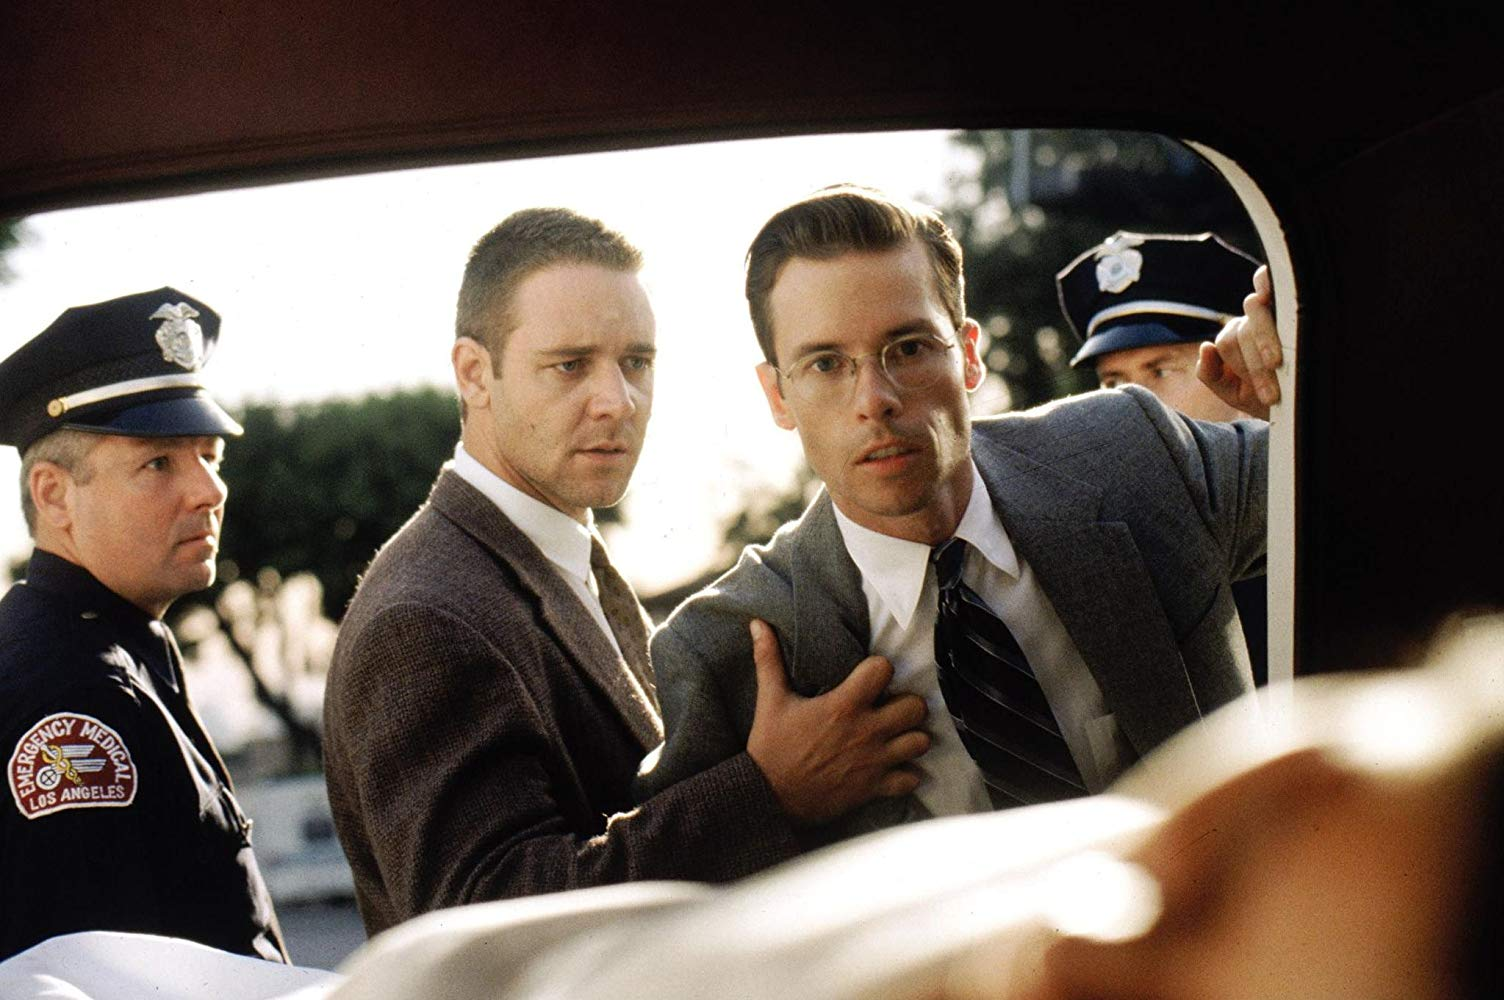 White and Exley, L.A. Confidential (1997)